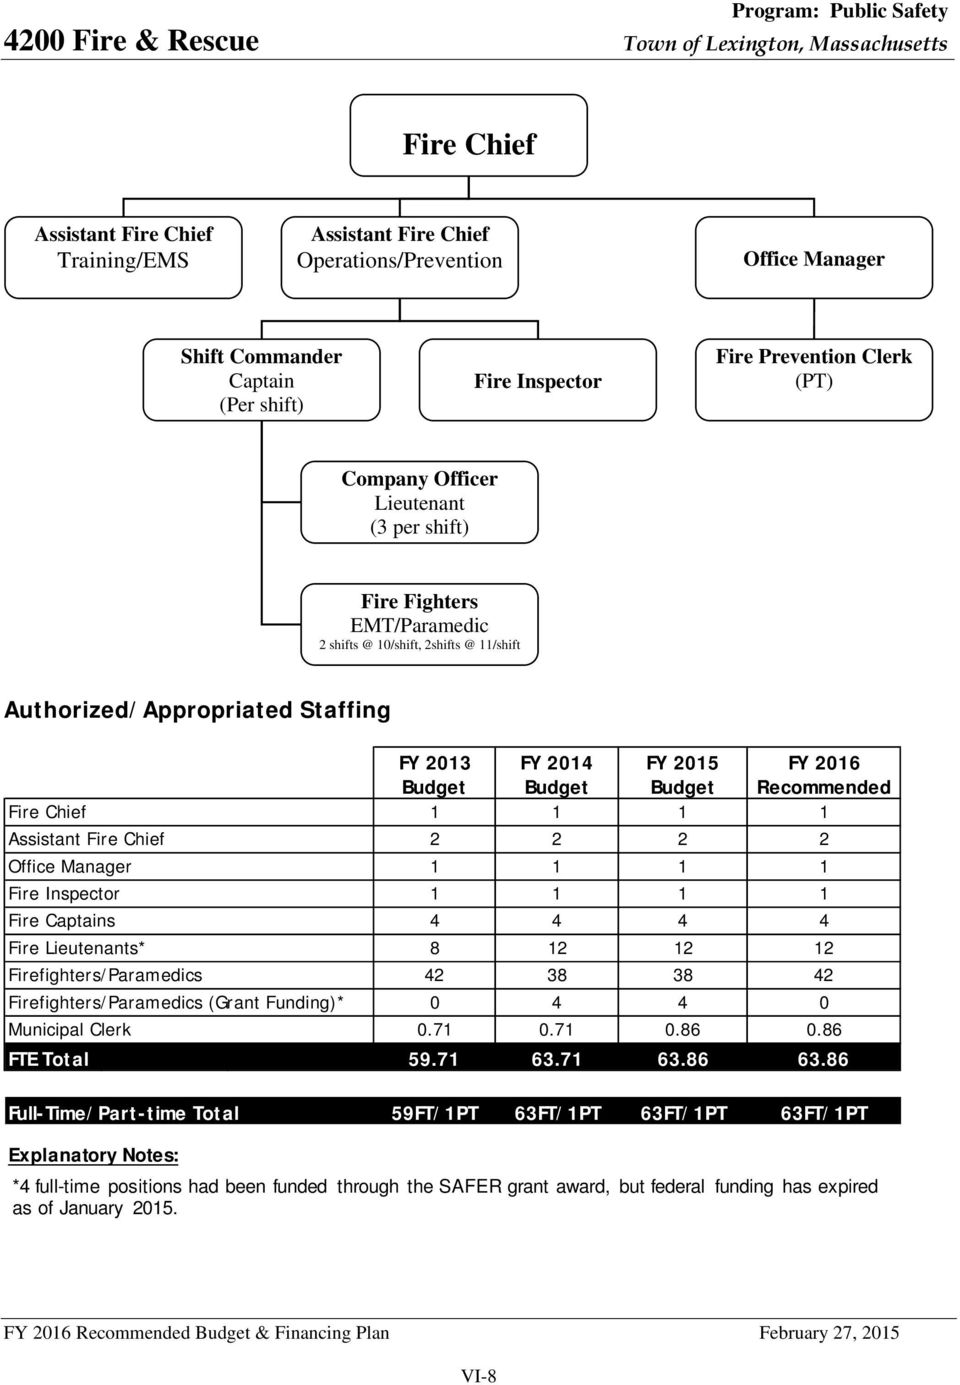 Authorized/Appropriated Staffing FY 2013 FY 2014 FY 2015 FY 2016 Budget Budget Budget Recommended Fire Chief 1 1 1 1 Assistant Fire Chief 2 2 2 2 Office Manager 1 1 1 1 Fire Inspector 1 1 1 1 Fire